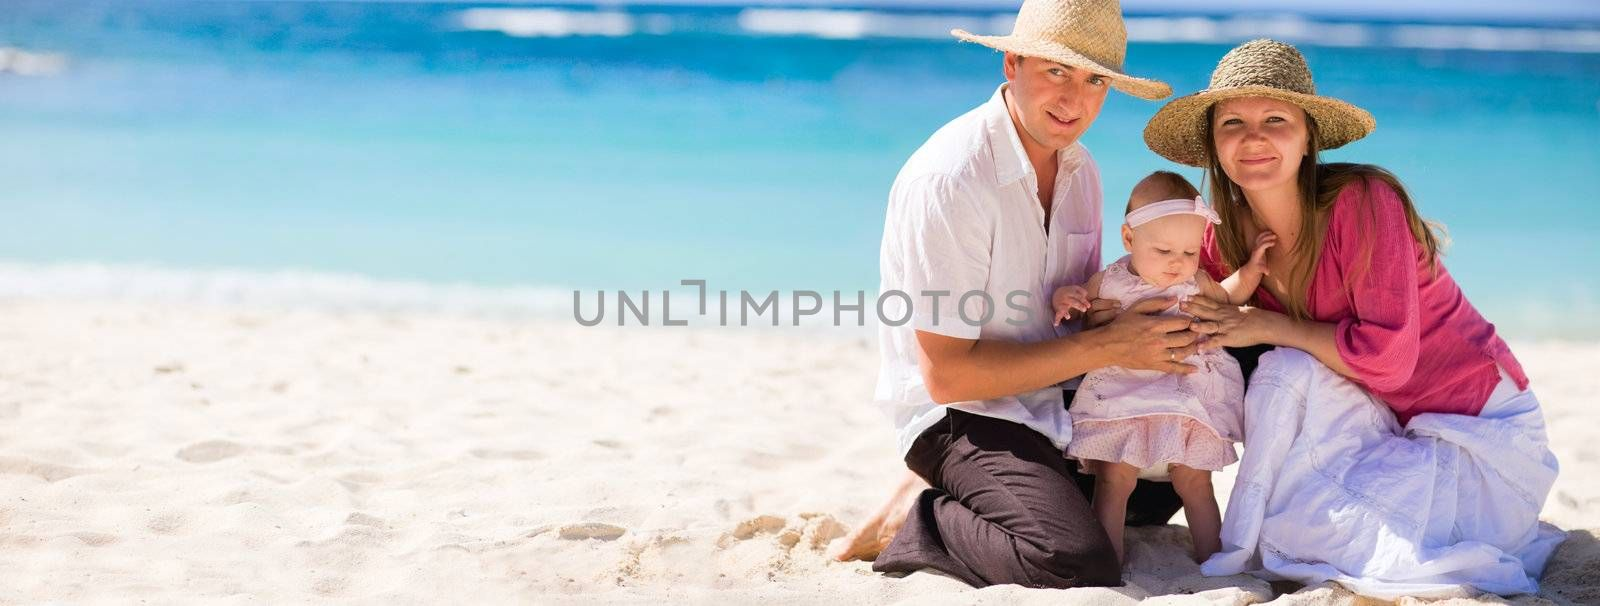 Family vacation. Young family of three on white sand tropical beach